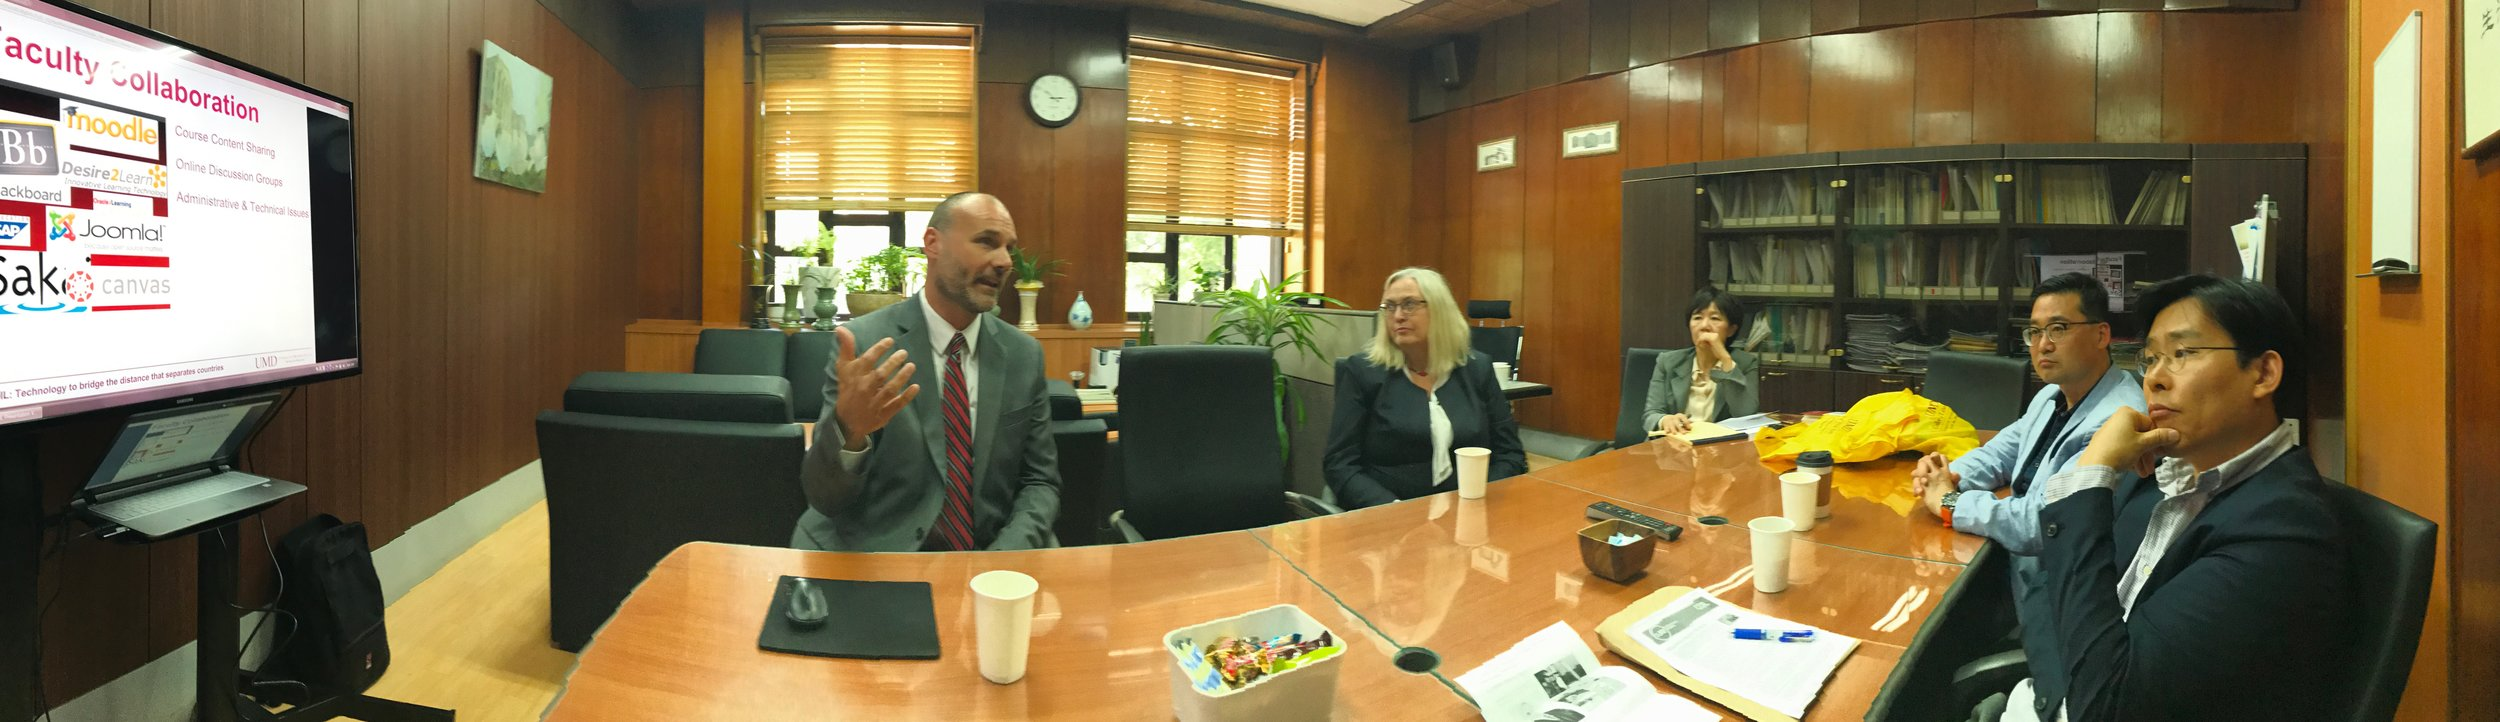 Director of Information Technology Jason Davis explains how the tools of technology can serve as a bridge connecting learning across cultures and countries in a presentation to the Dean of Academic Affairs at Kyung Hee University. Photo courtesy of John Hatcher.